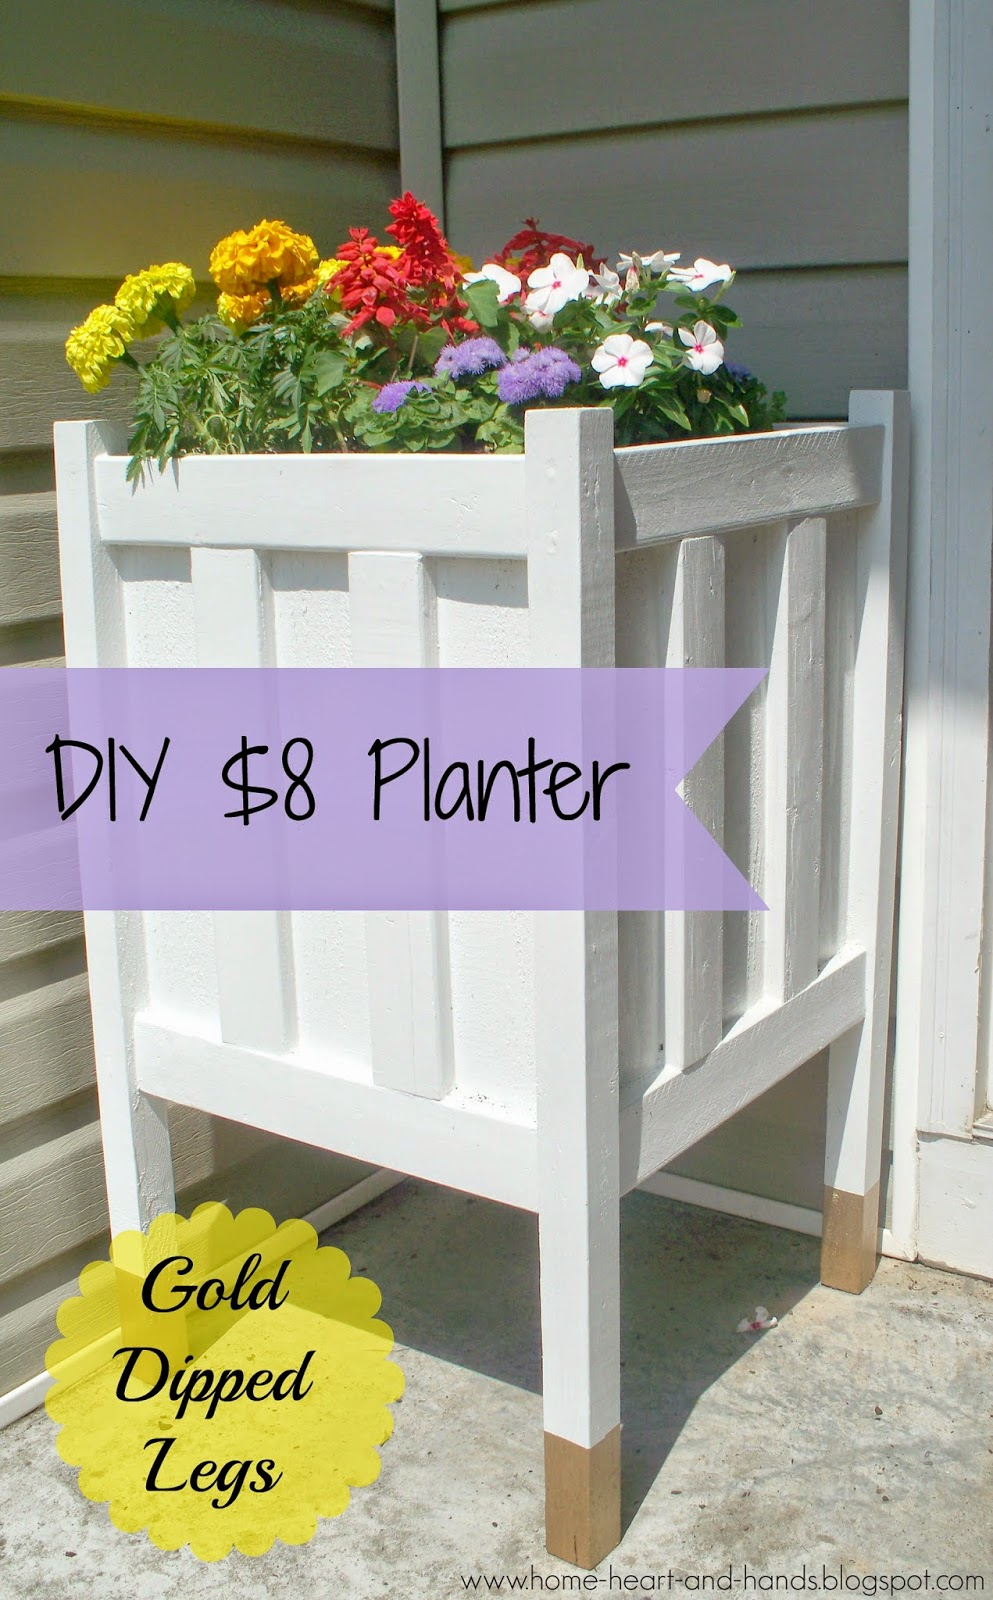 19 Backyard DIY SpruceUps on a Budget is part of Backyard diy projects, Diy backyard, Diy wood planters, Diy front porch, Diy planters, Porch planters - water table 13  Easy outdoor couch 14  Easy $15 bench 15  Cool cinder